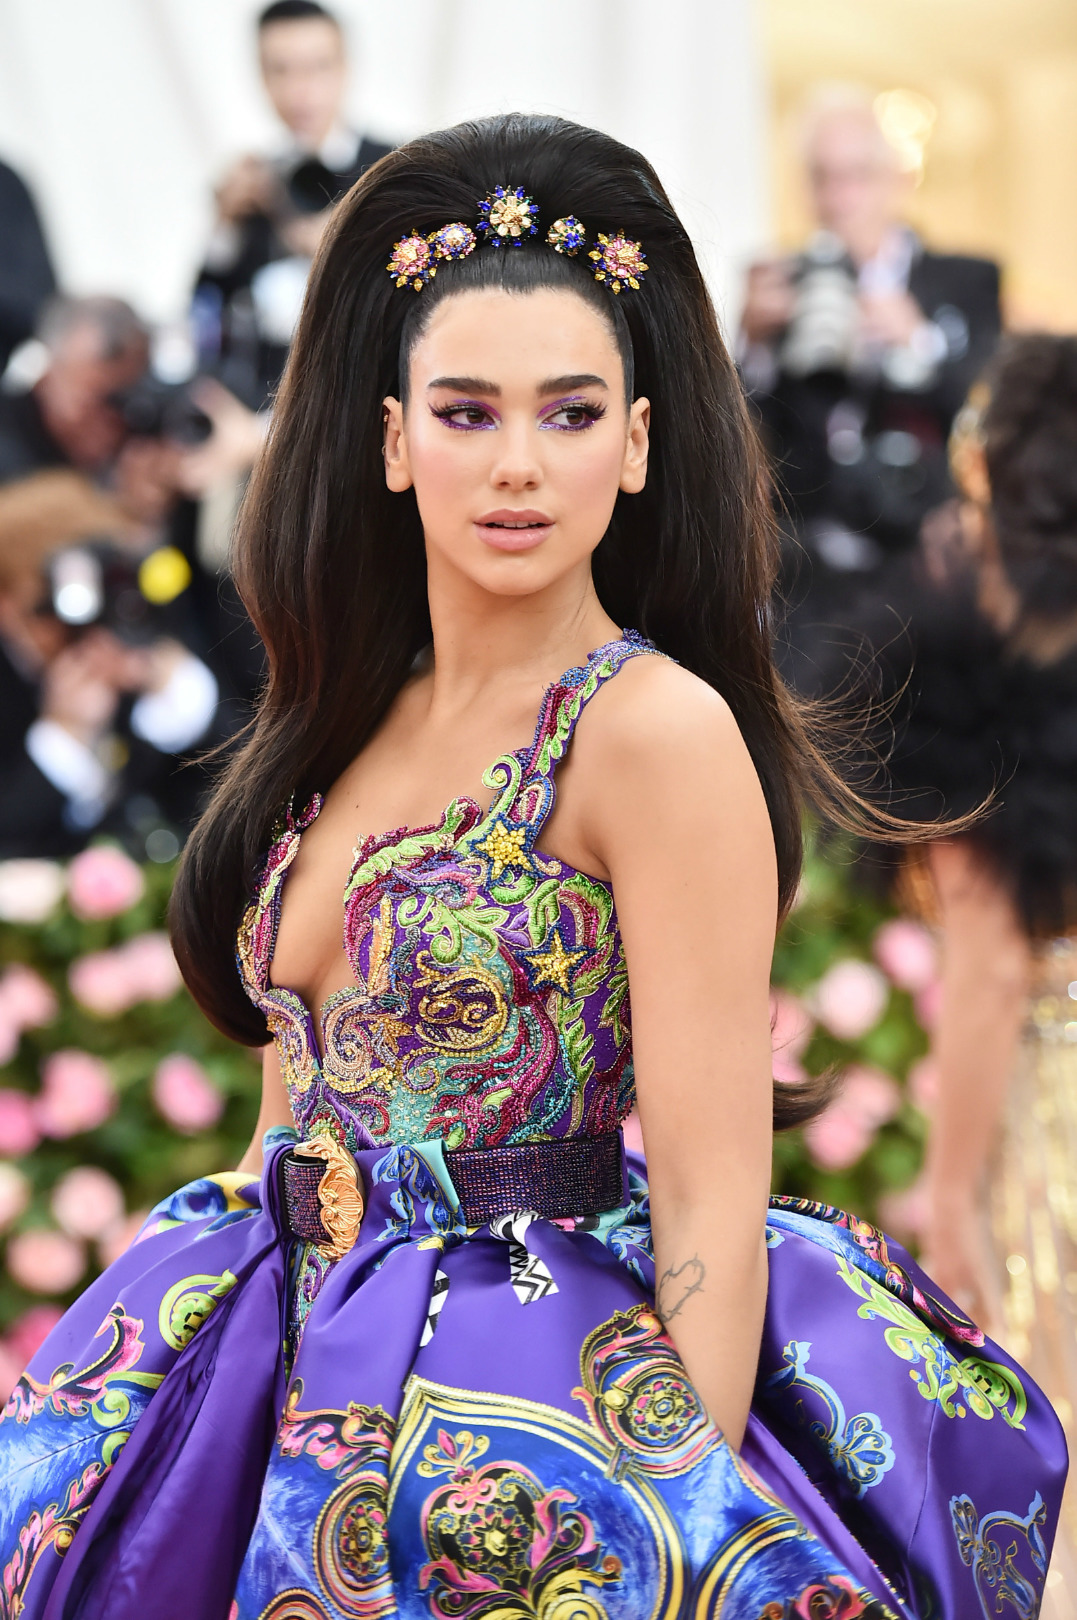 Dua Lipa Hair Design - Dua Lipa Net Worth, Pics, Wallpapers, Career and Biography